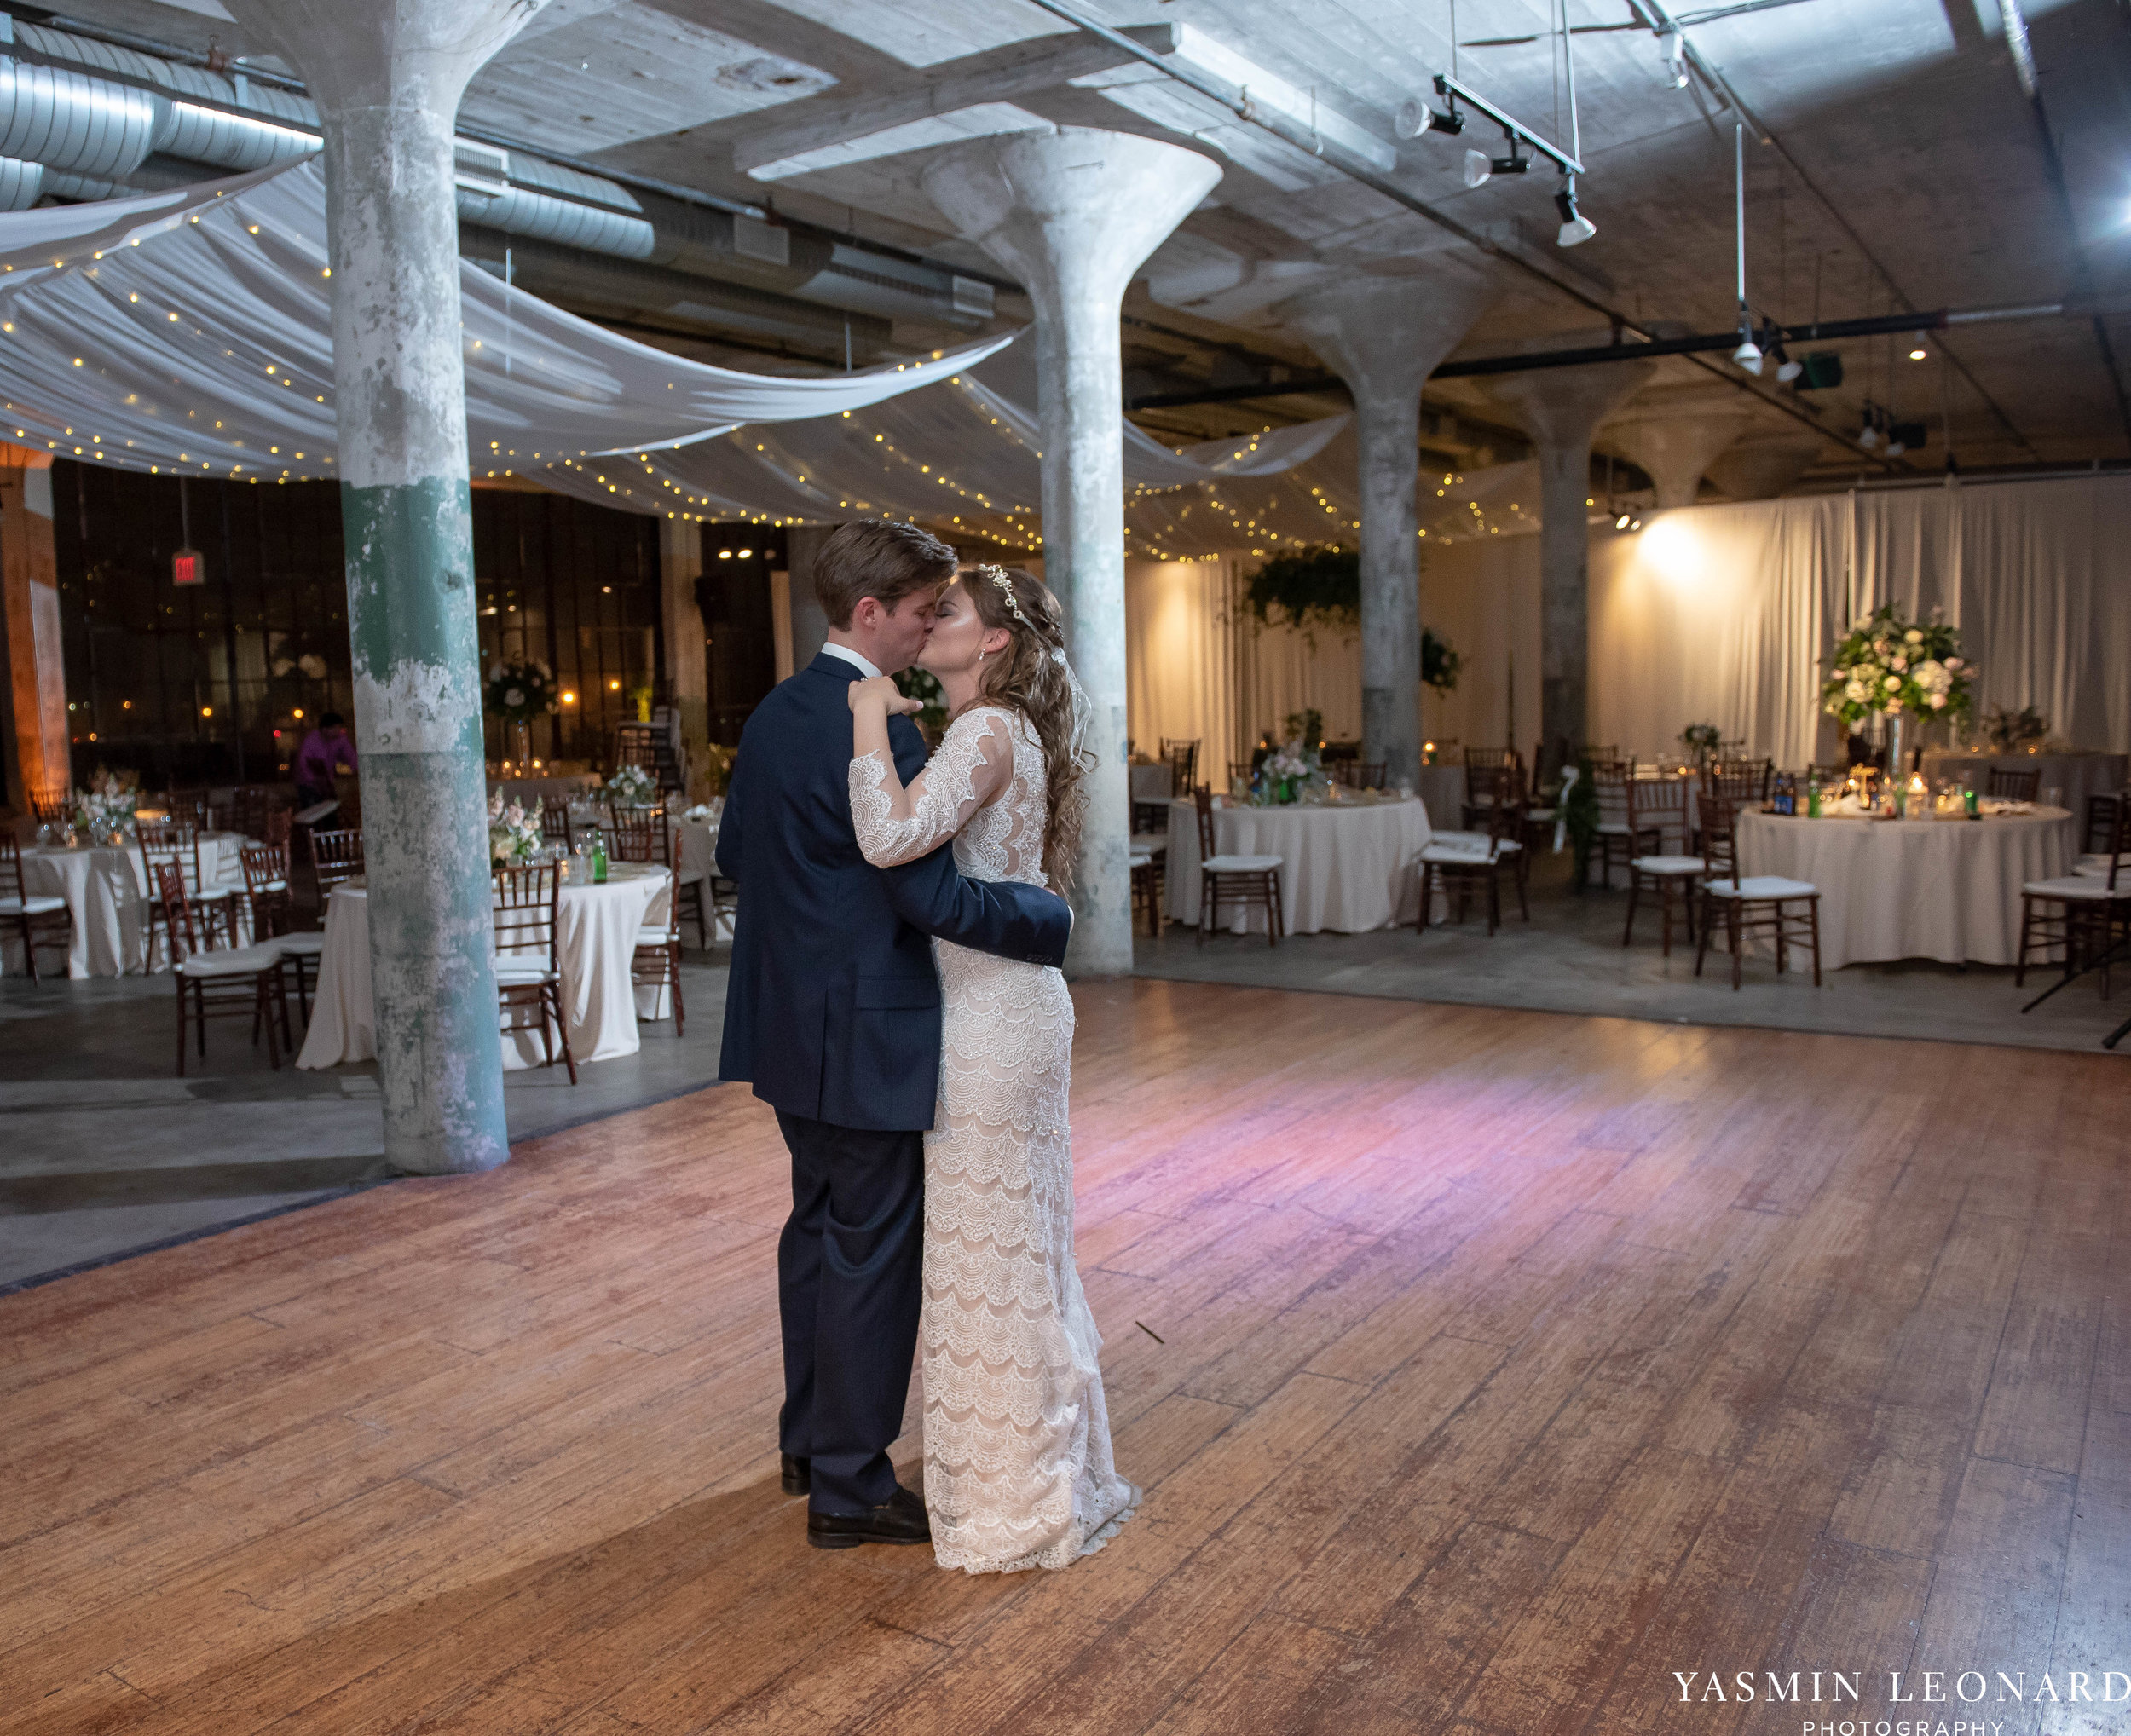 The Lofts at Union Square - Unions - High Point Weddings - NC Weddings - NC Wedding Photographer - Yasmin Leonard Photography - Just Priceless - Green Pink and Gold Wedding - Elegant Wedding-59.jpg